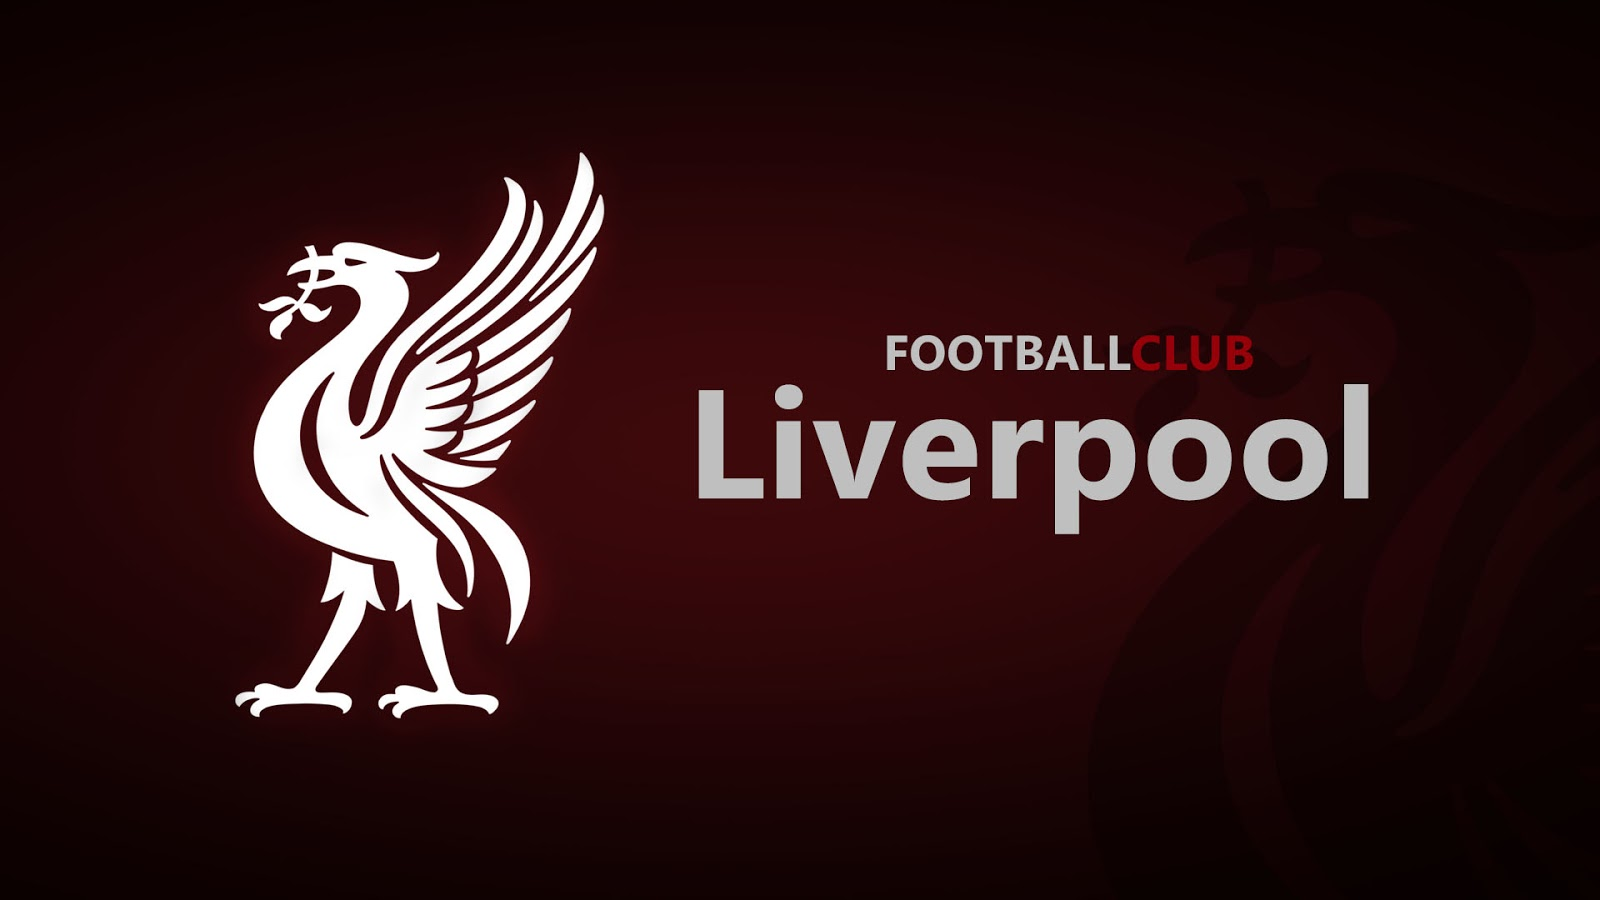 Liverpool Fc Logo Black And White 86167 - Billy Knight